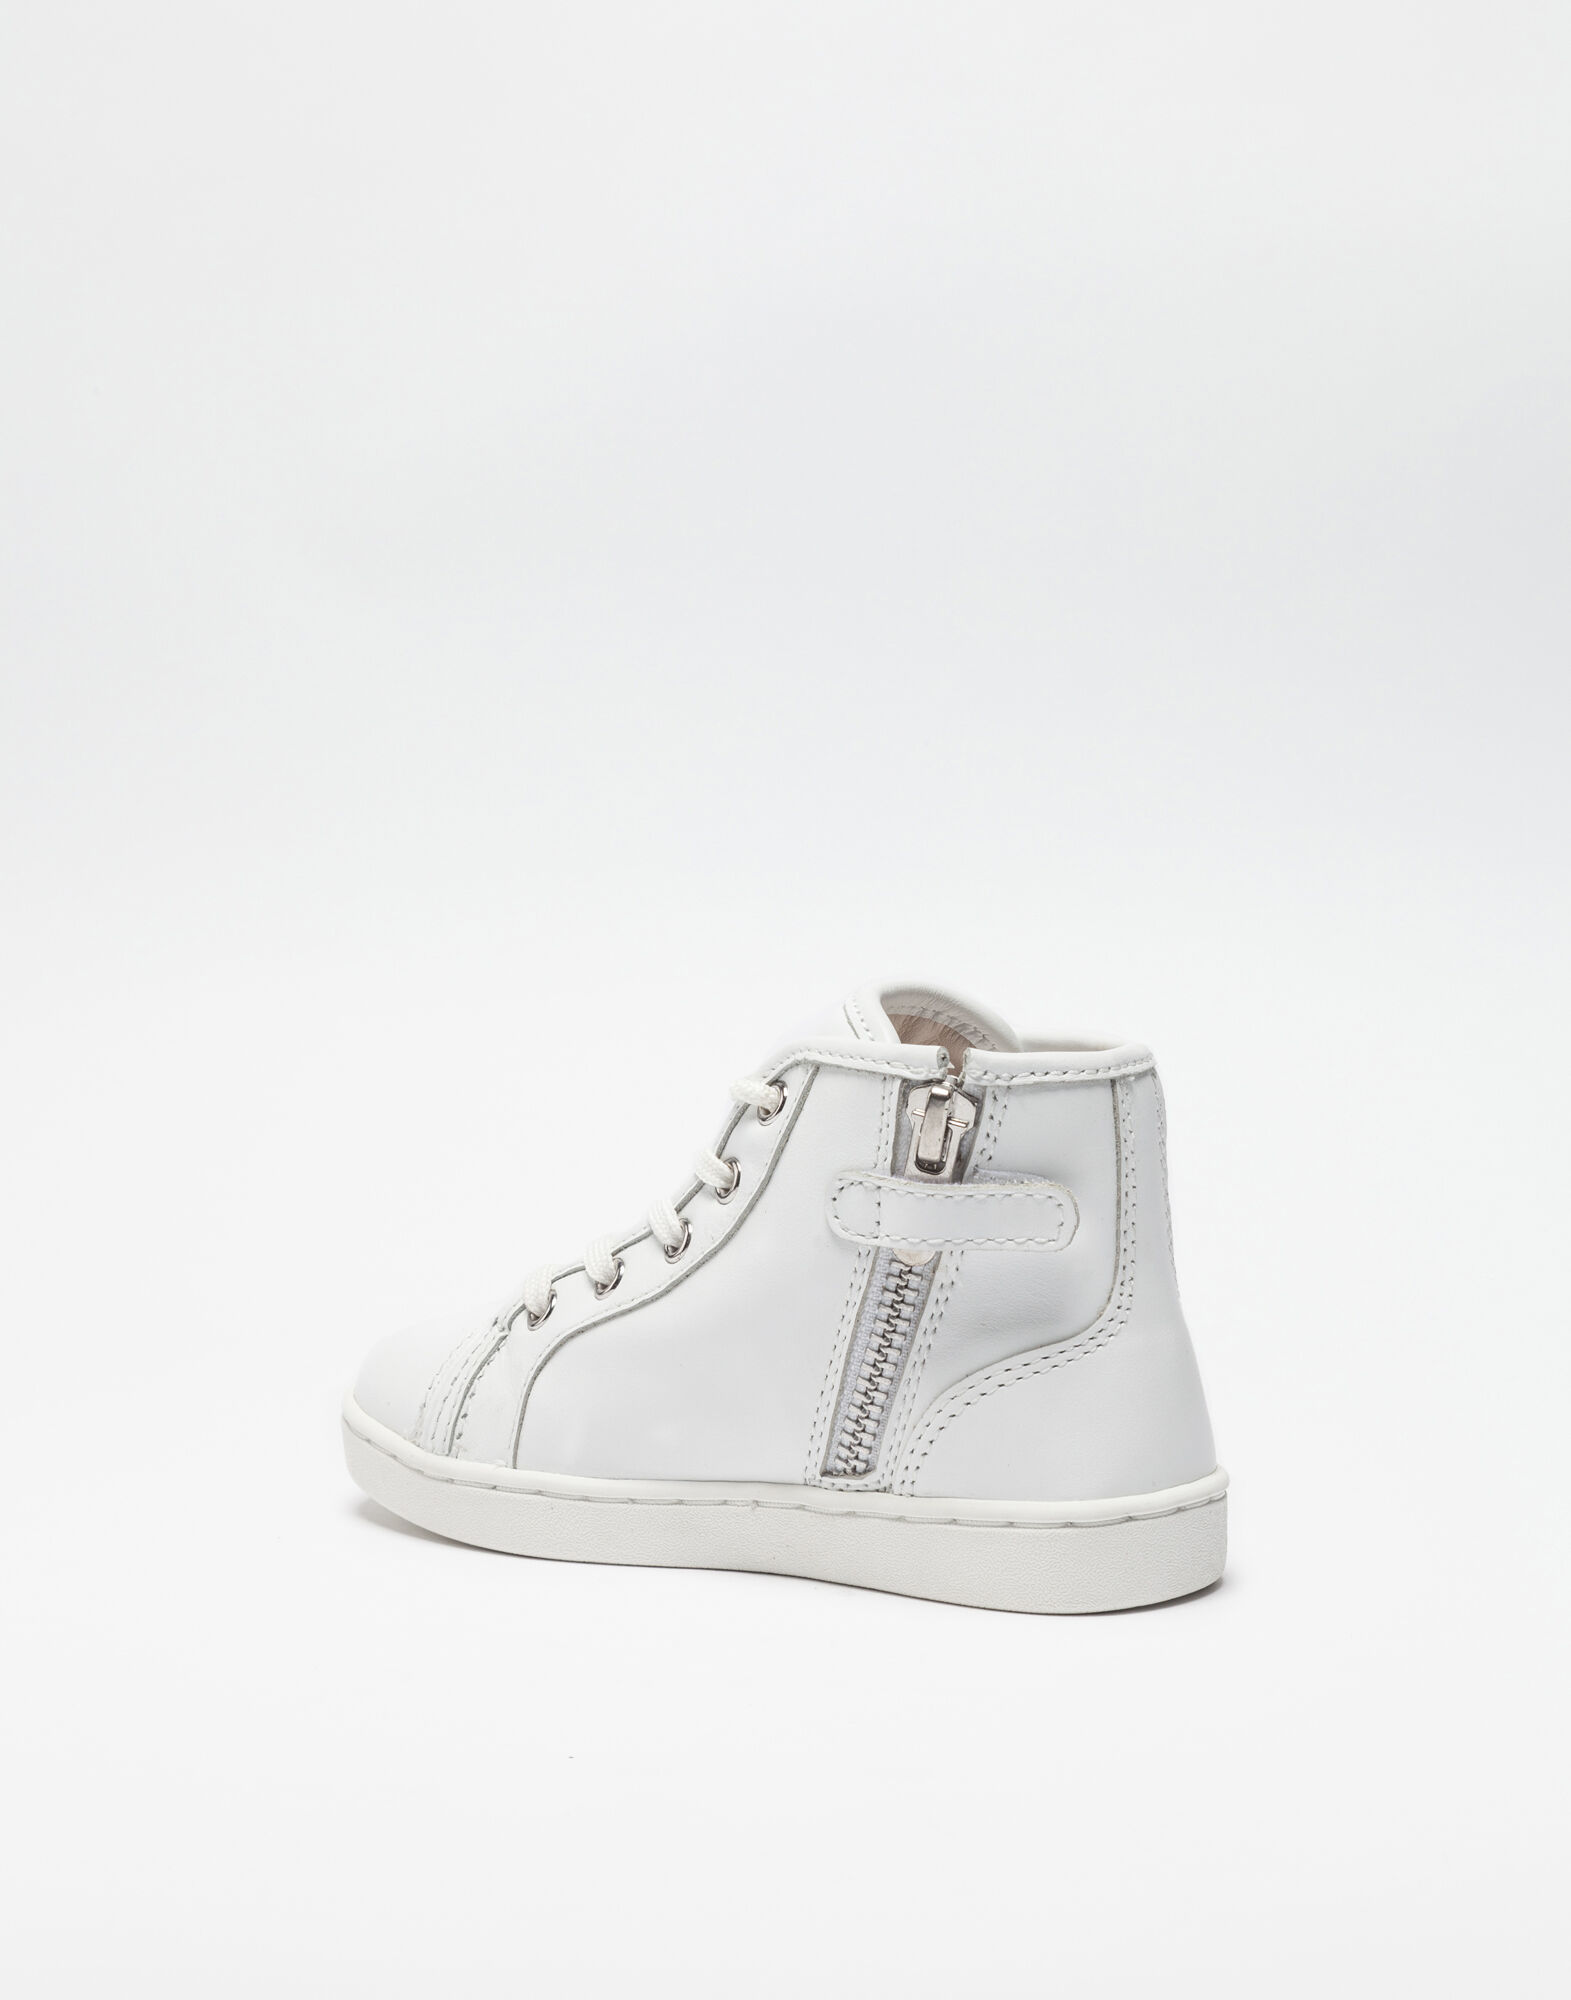 HIGH TOP-SNEAKERS IN NAPA LEATHER